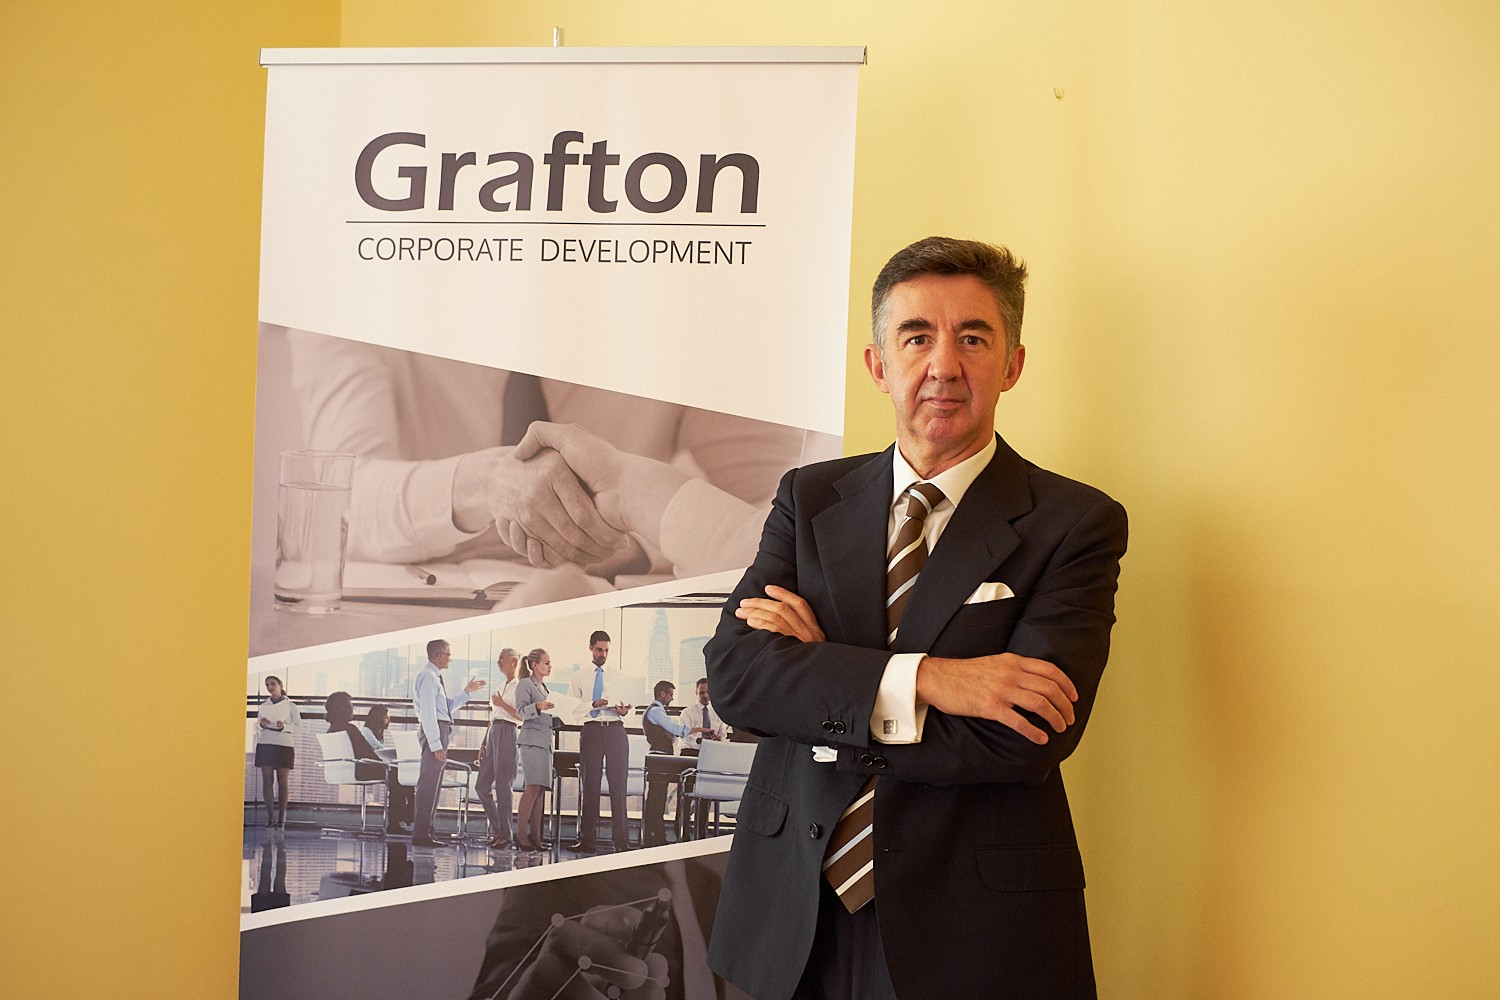 Grafton Corporate Development foresees a growth of the M&A sector in Spain and Portugal until the end of the year